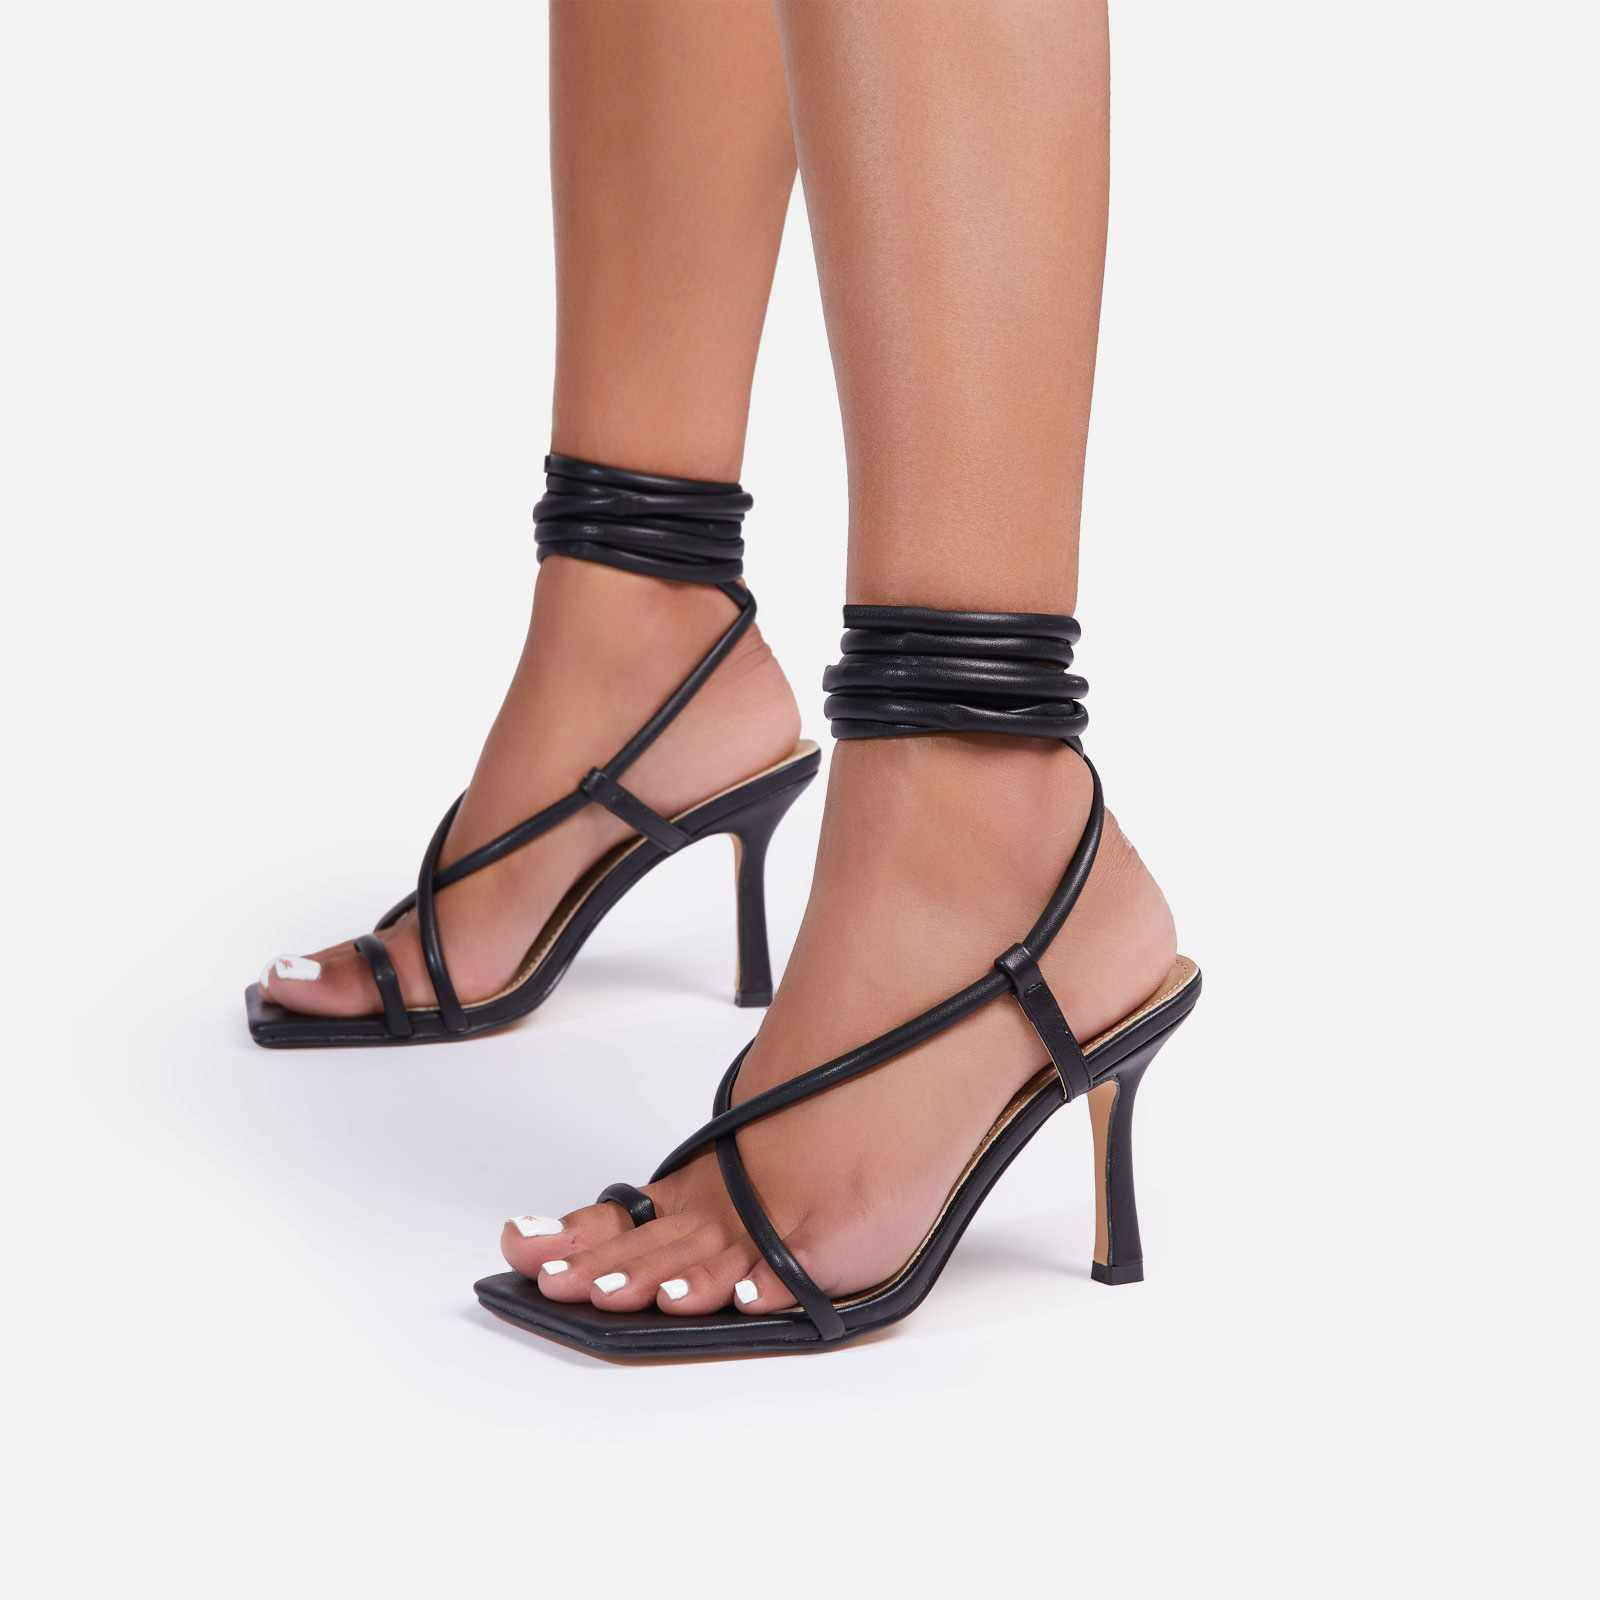 Baking Lace Up Square Toe Kitten Heel In Black Faux Leather